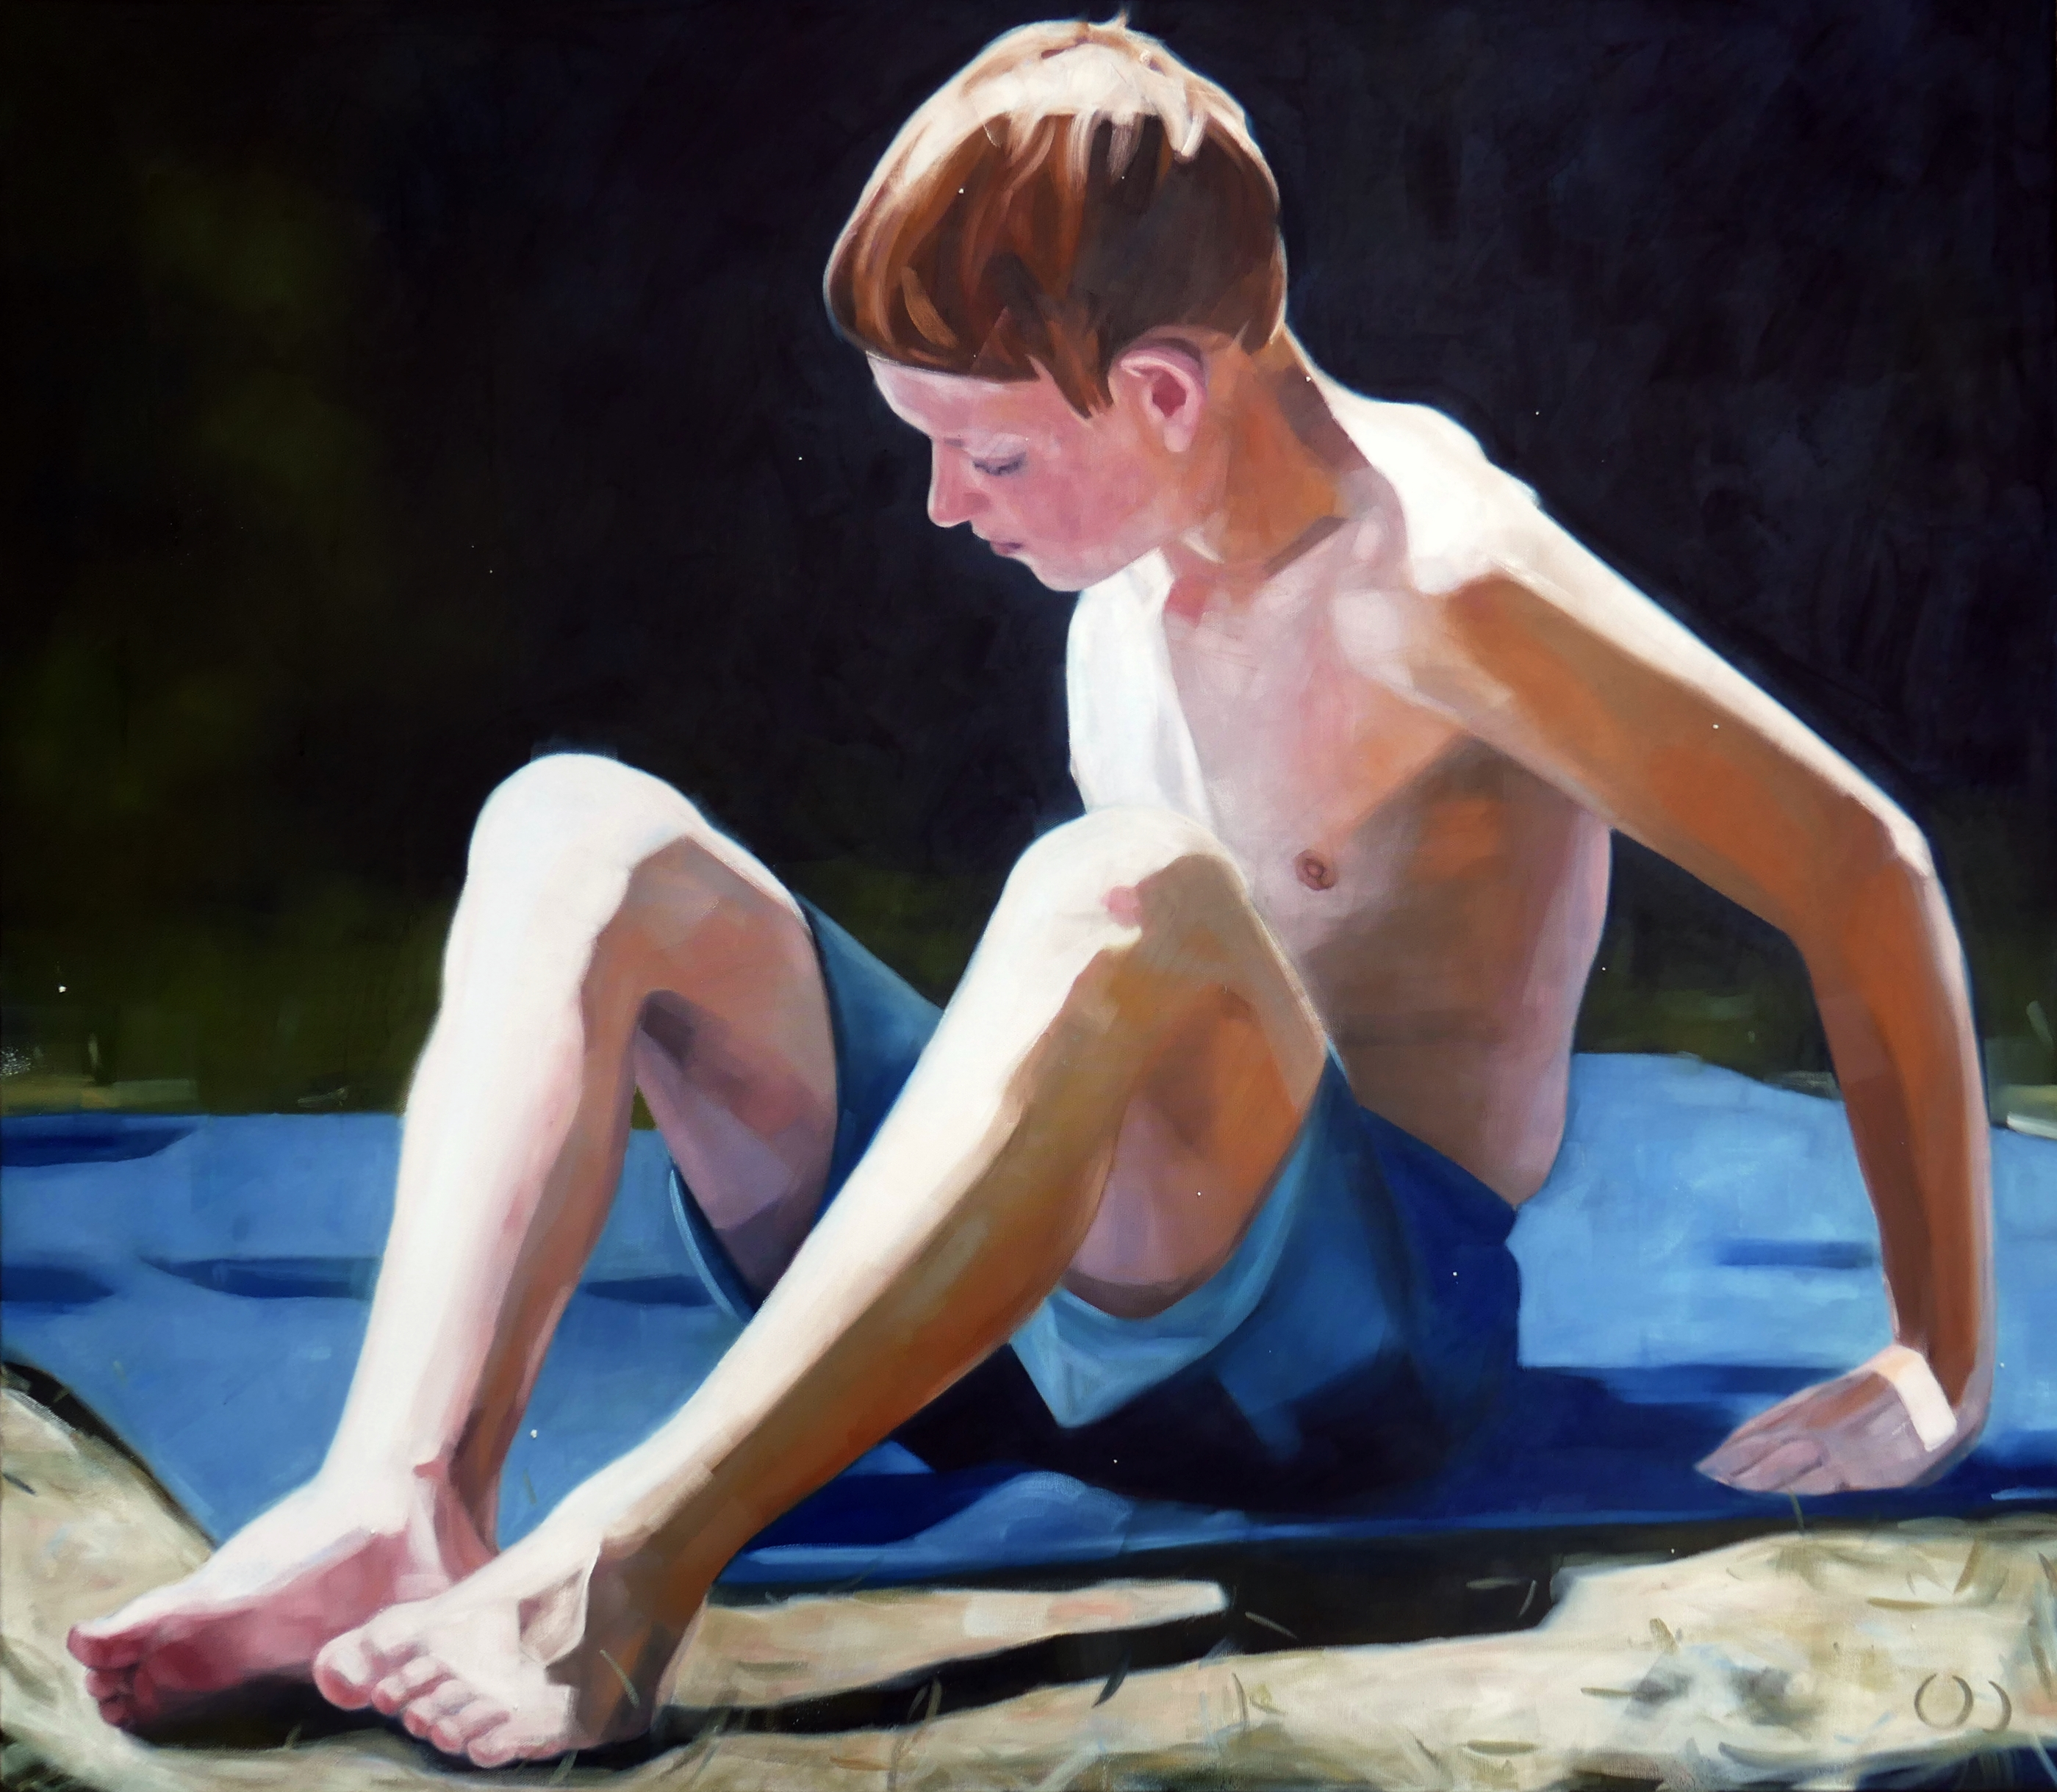 limbs 2, oil on canvas 140x100x2cm 2020.